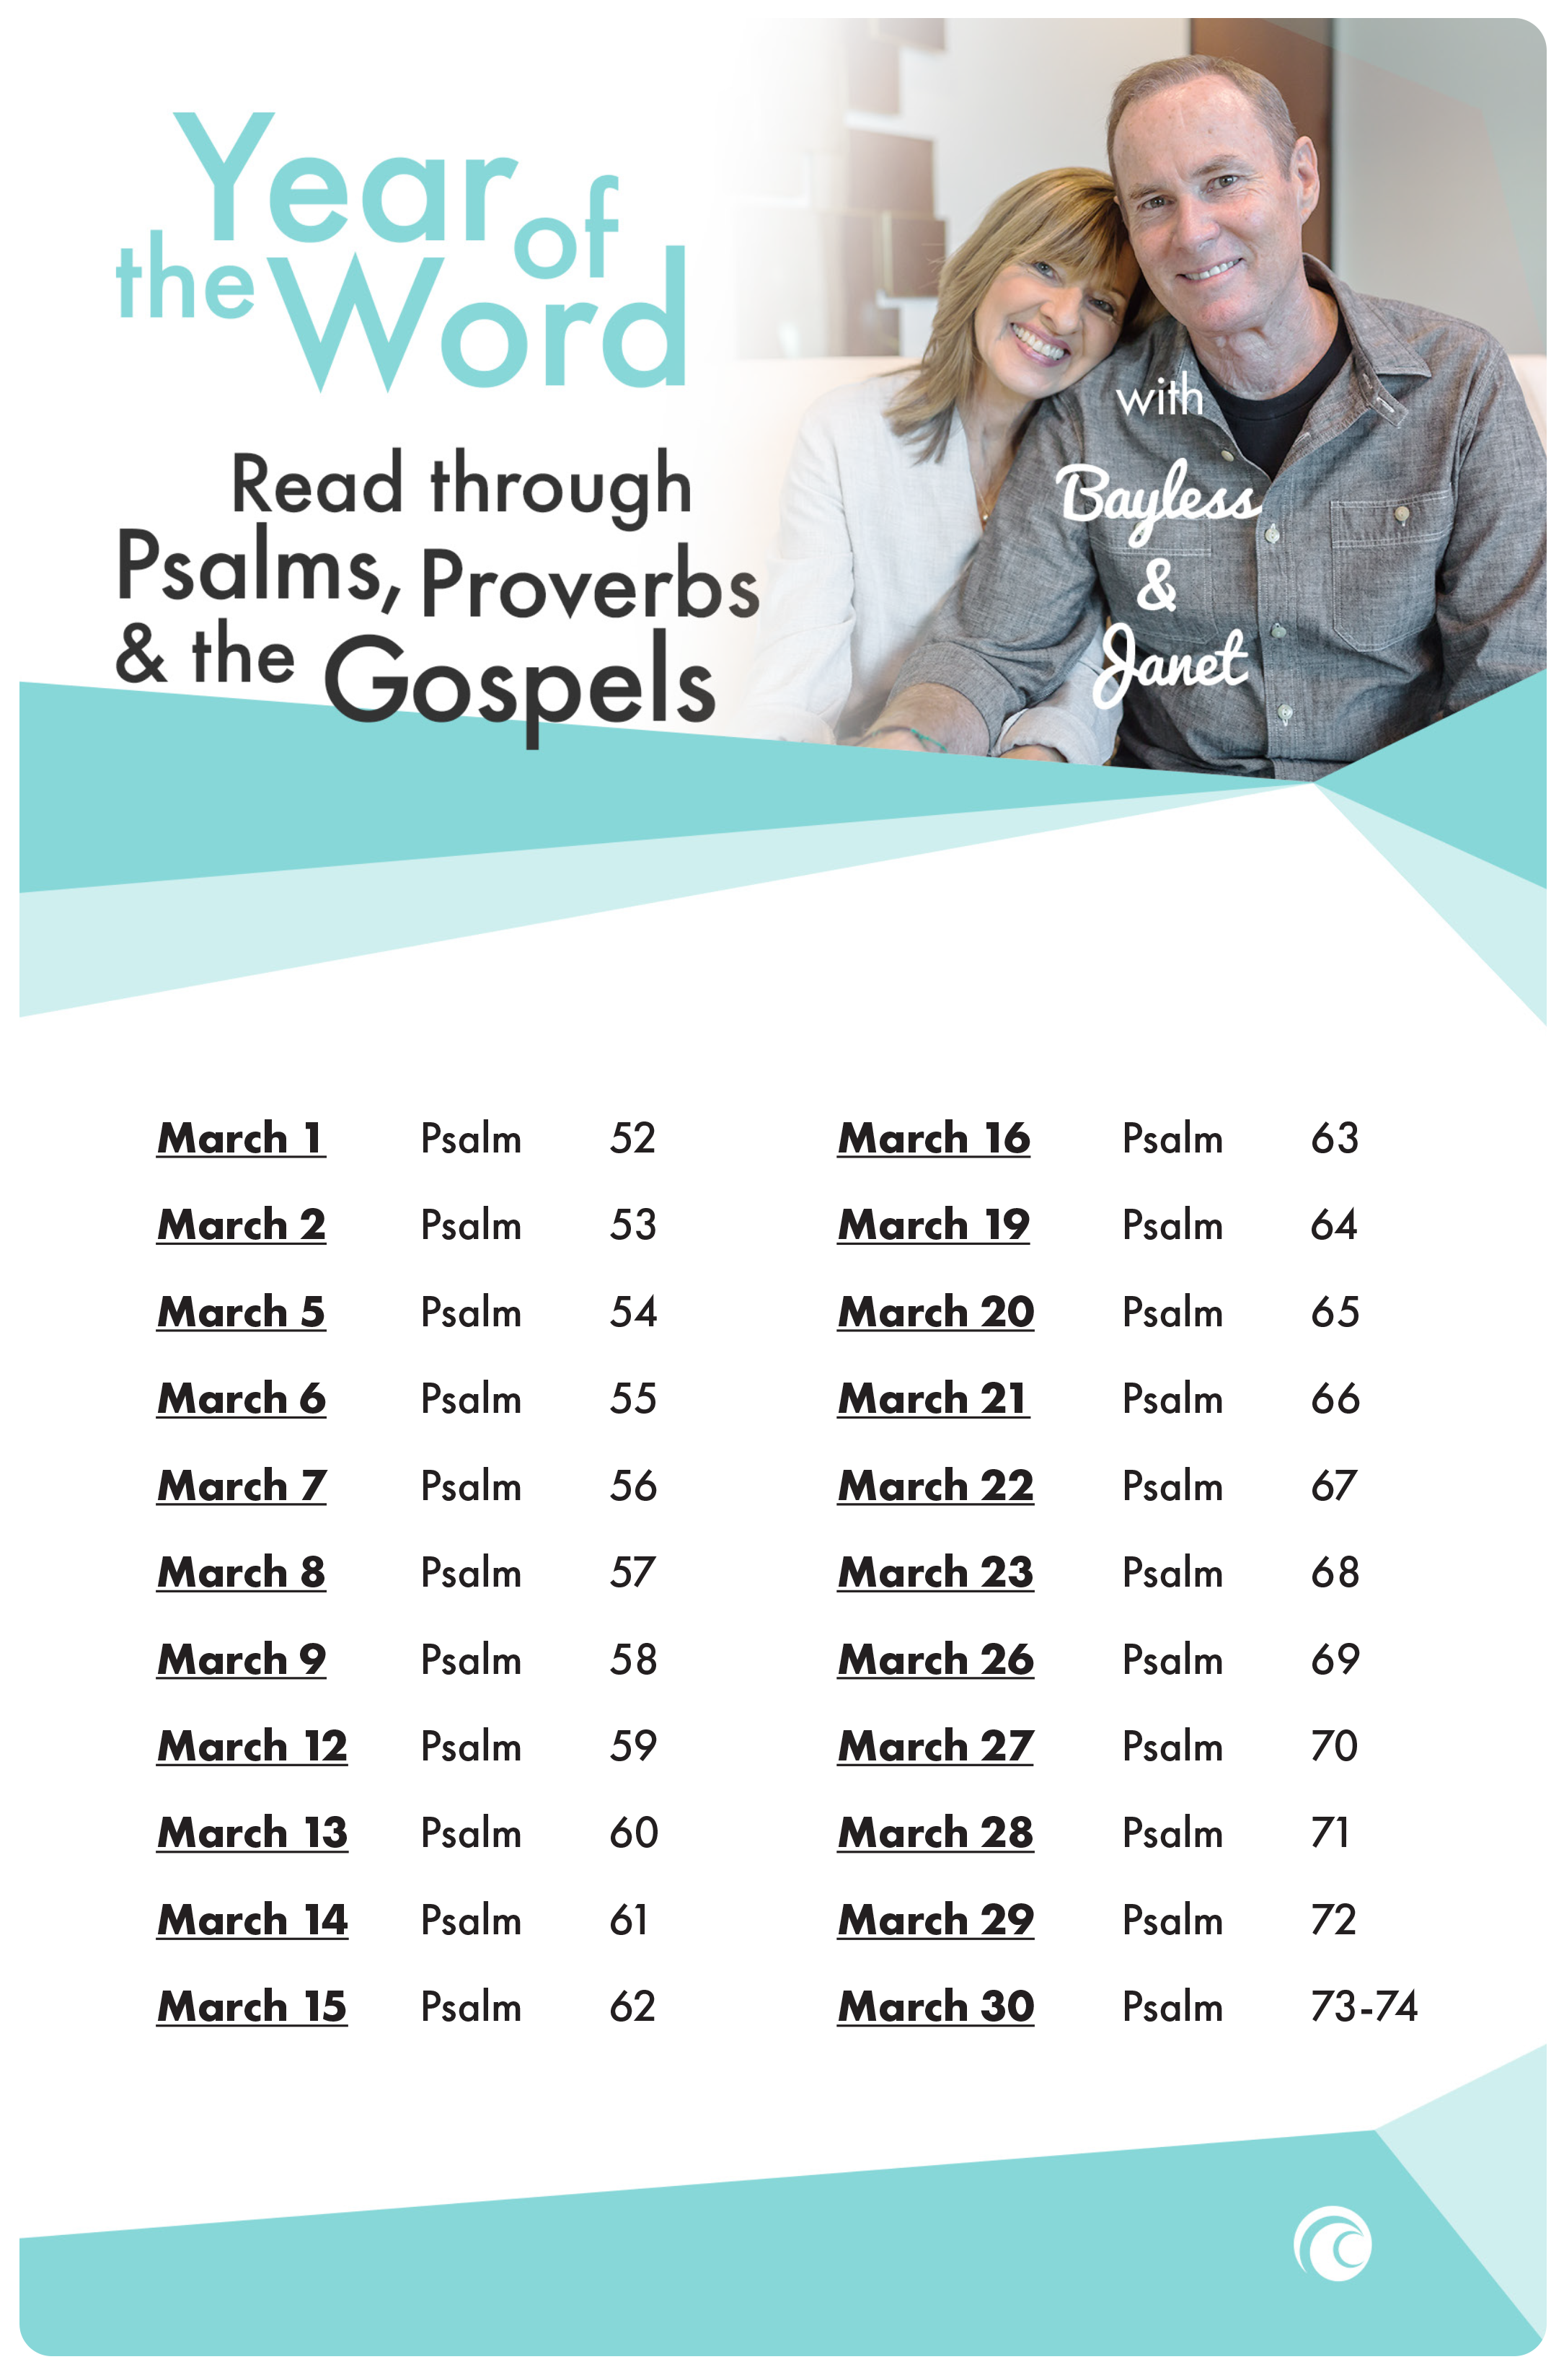 Year of the Word Psalms Proverbs Gospels March 2018